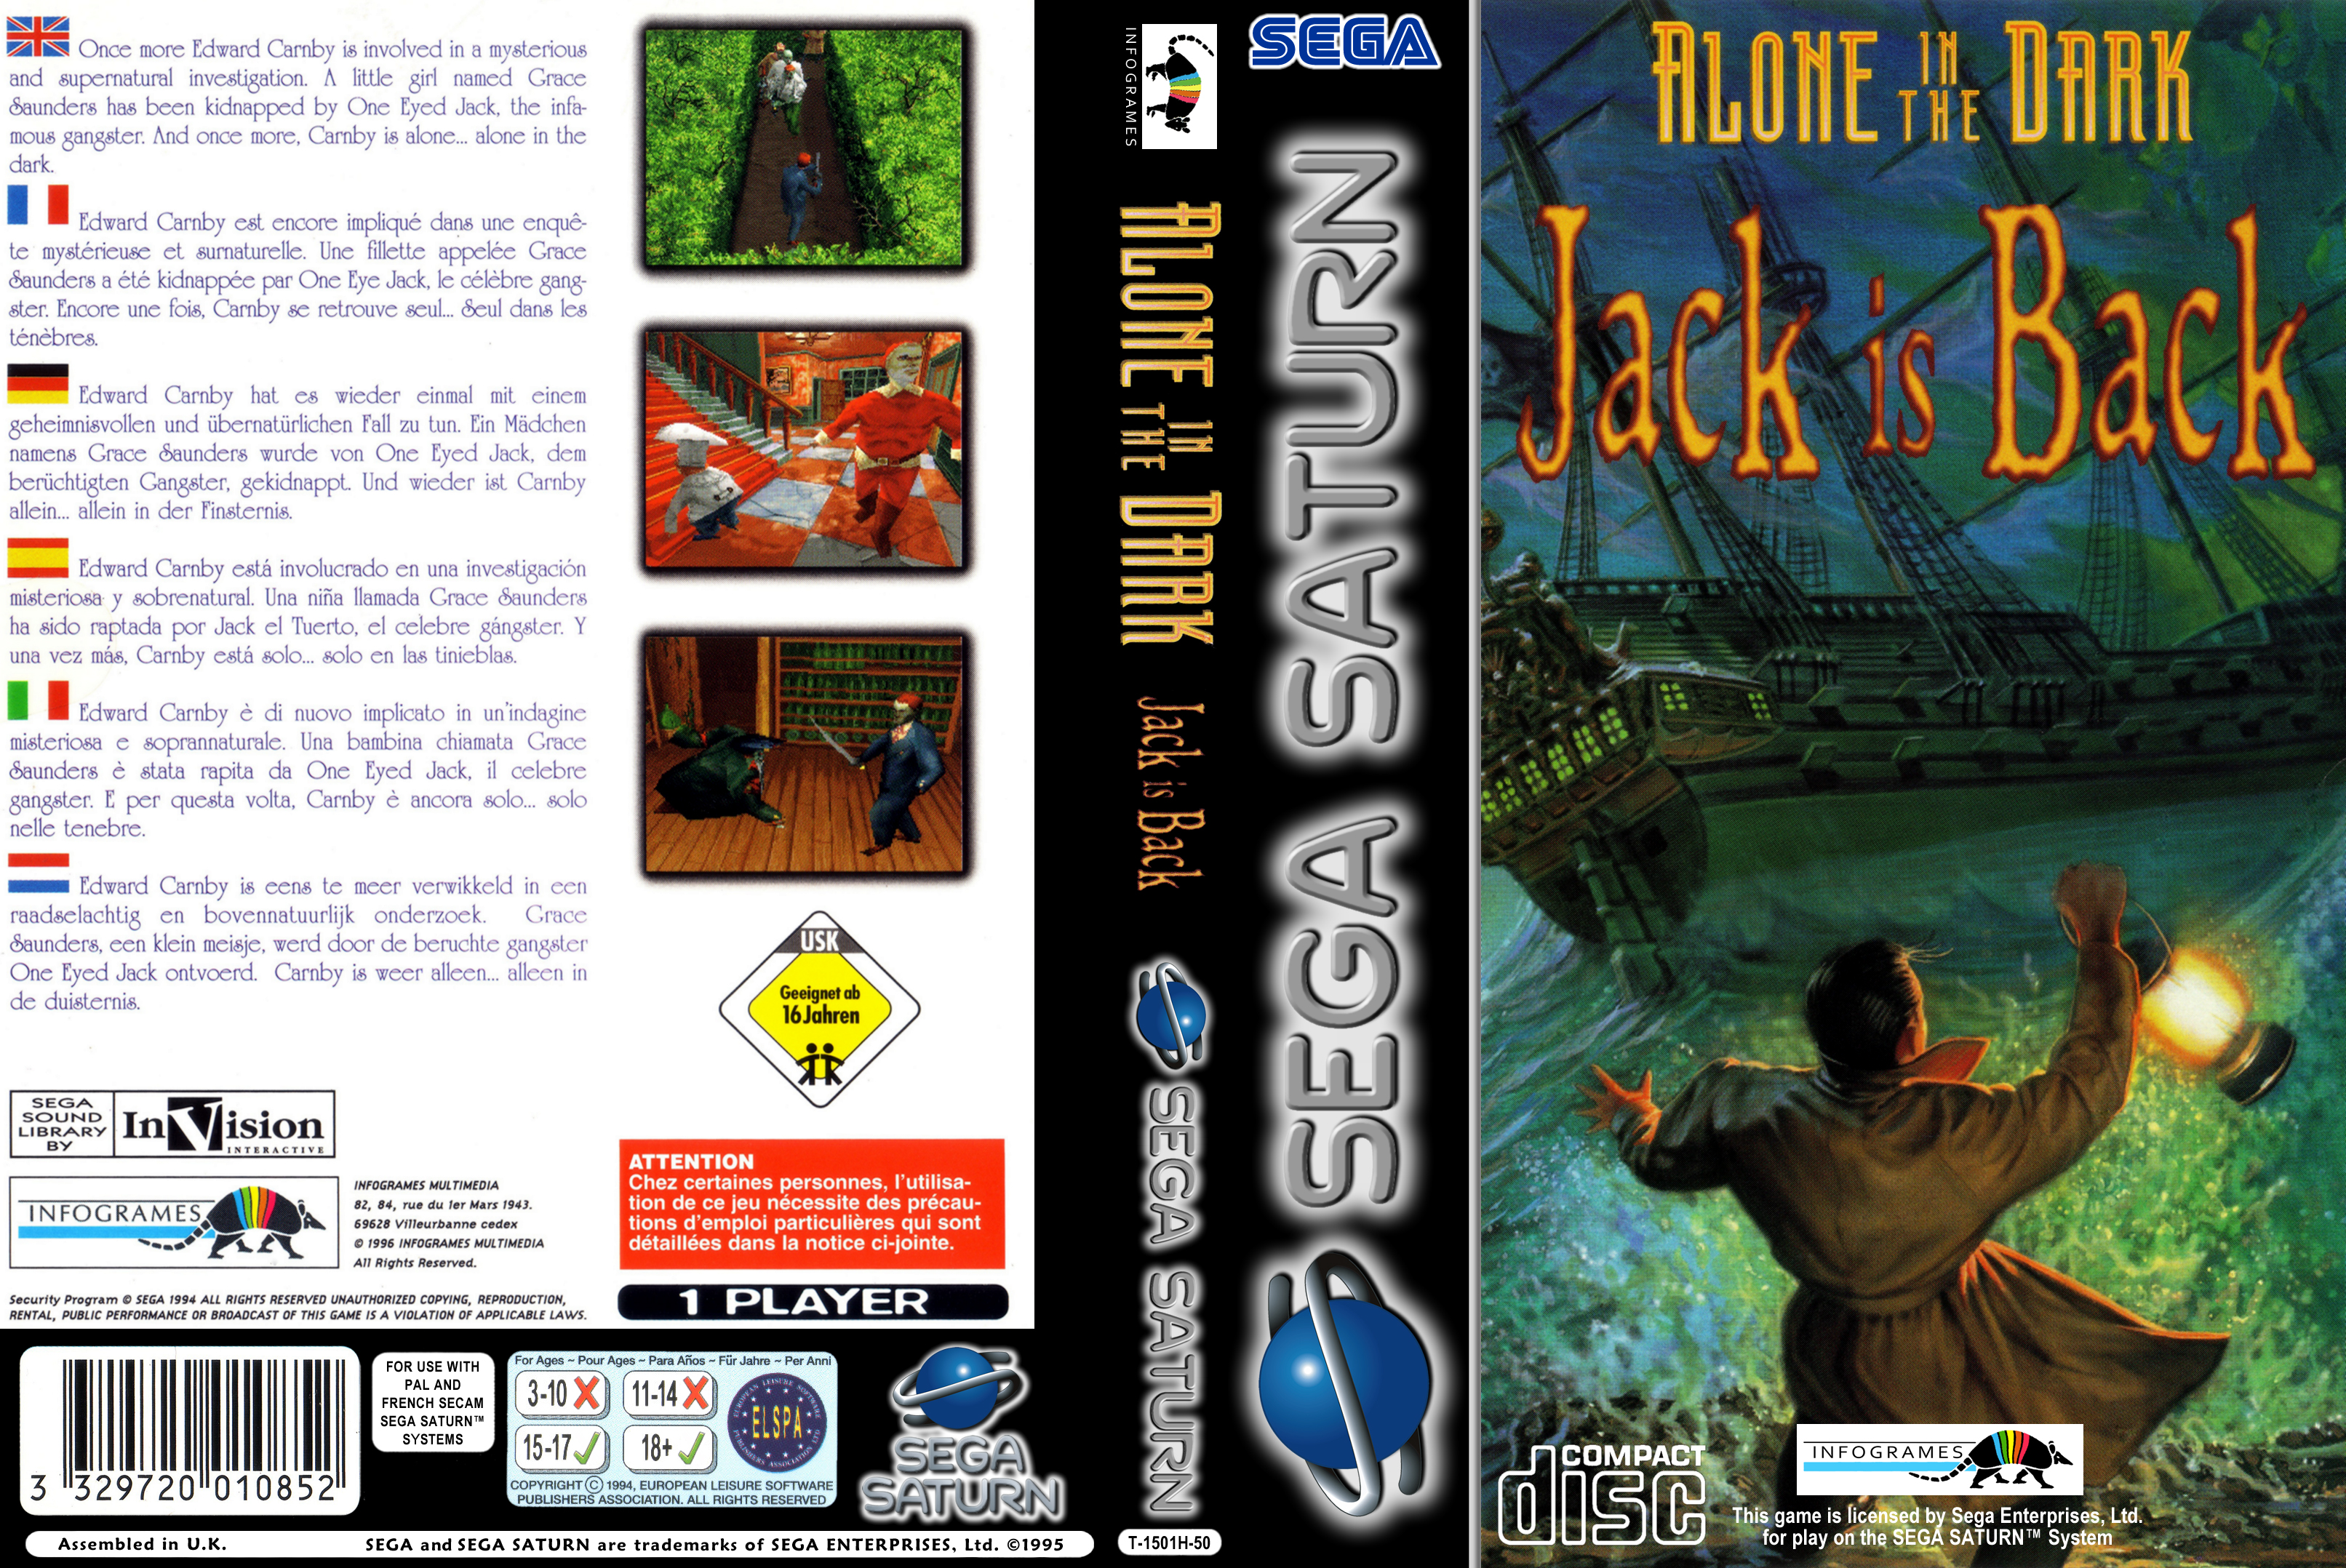 Alone In The Dark 2 Sega Saturn Covers Cover Century Over